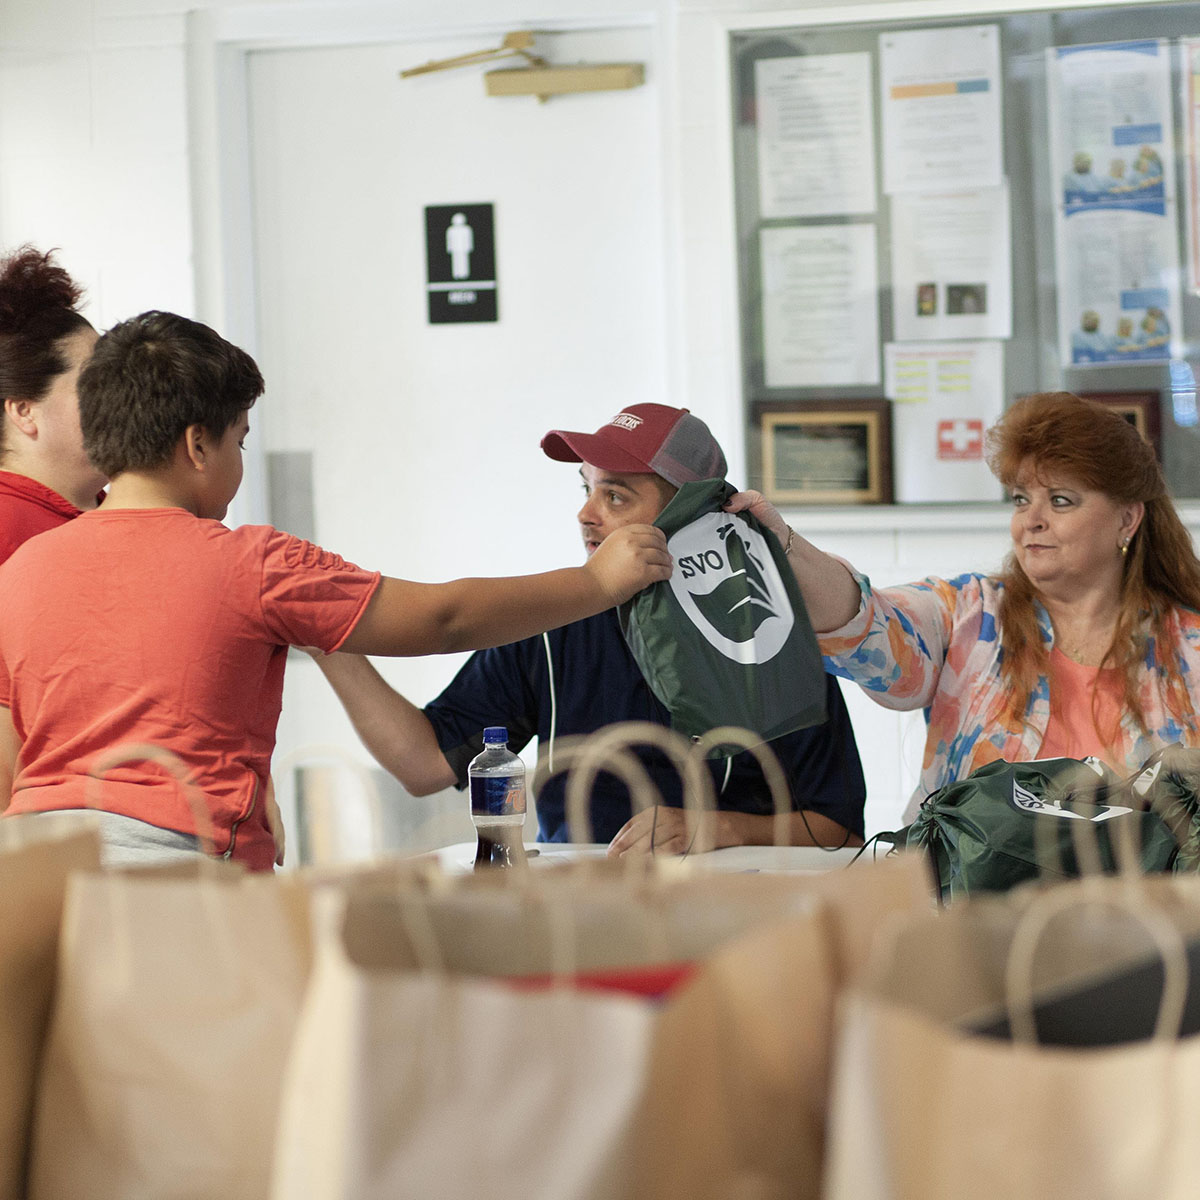 Mike Breeden and Terry Coffman hand supply bags to families